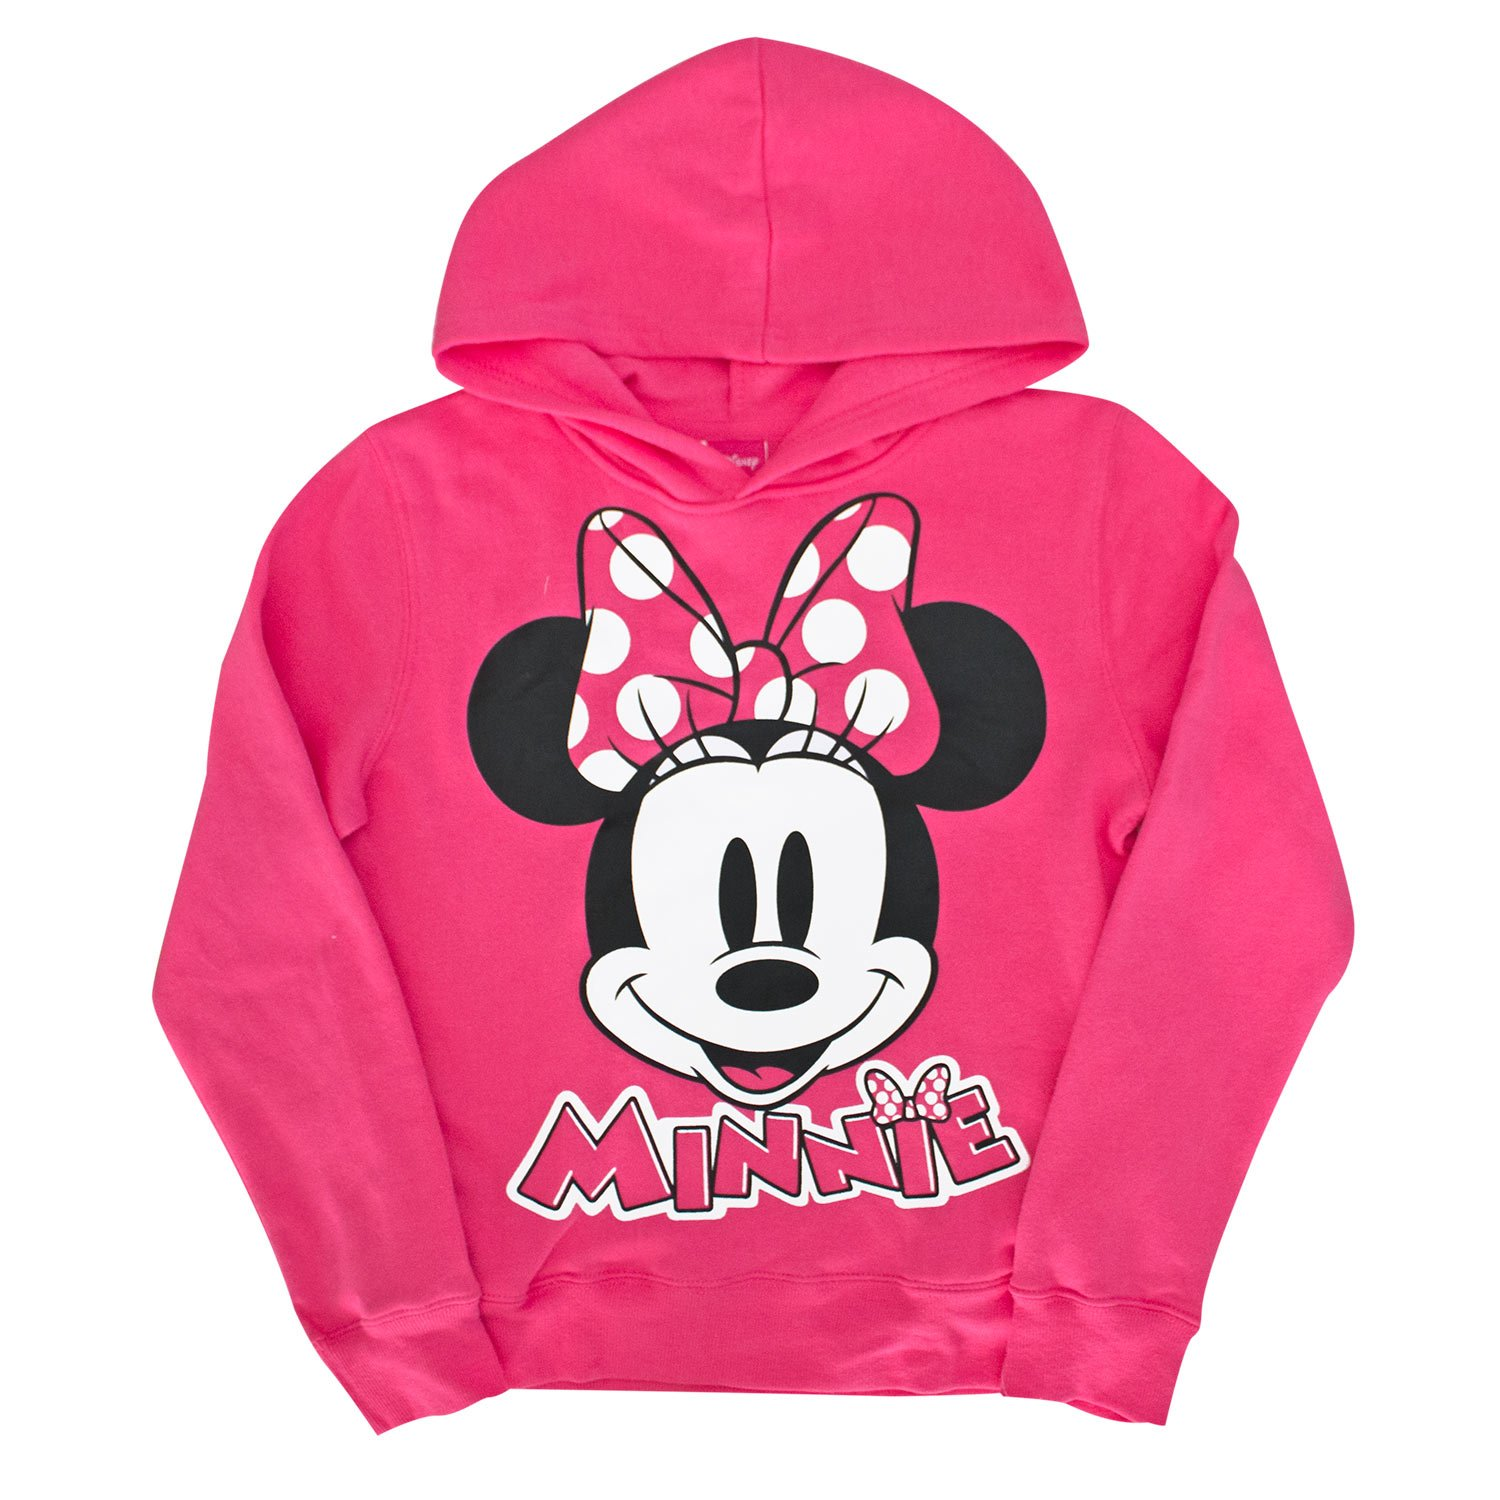 46a52e60e Buy Girls Disney Minnie Mouse Fleece Lined Cartoon Character Warm ...